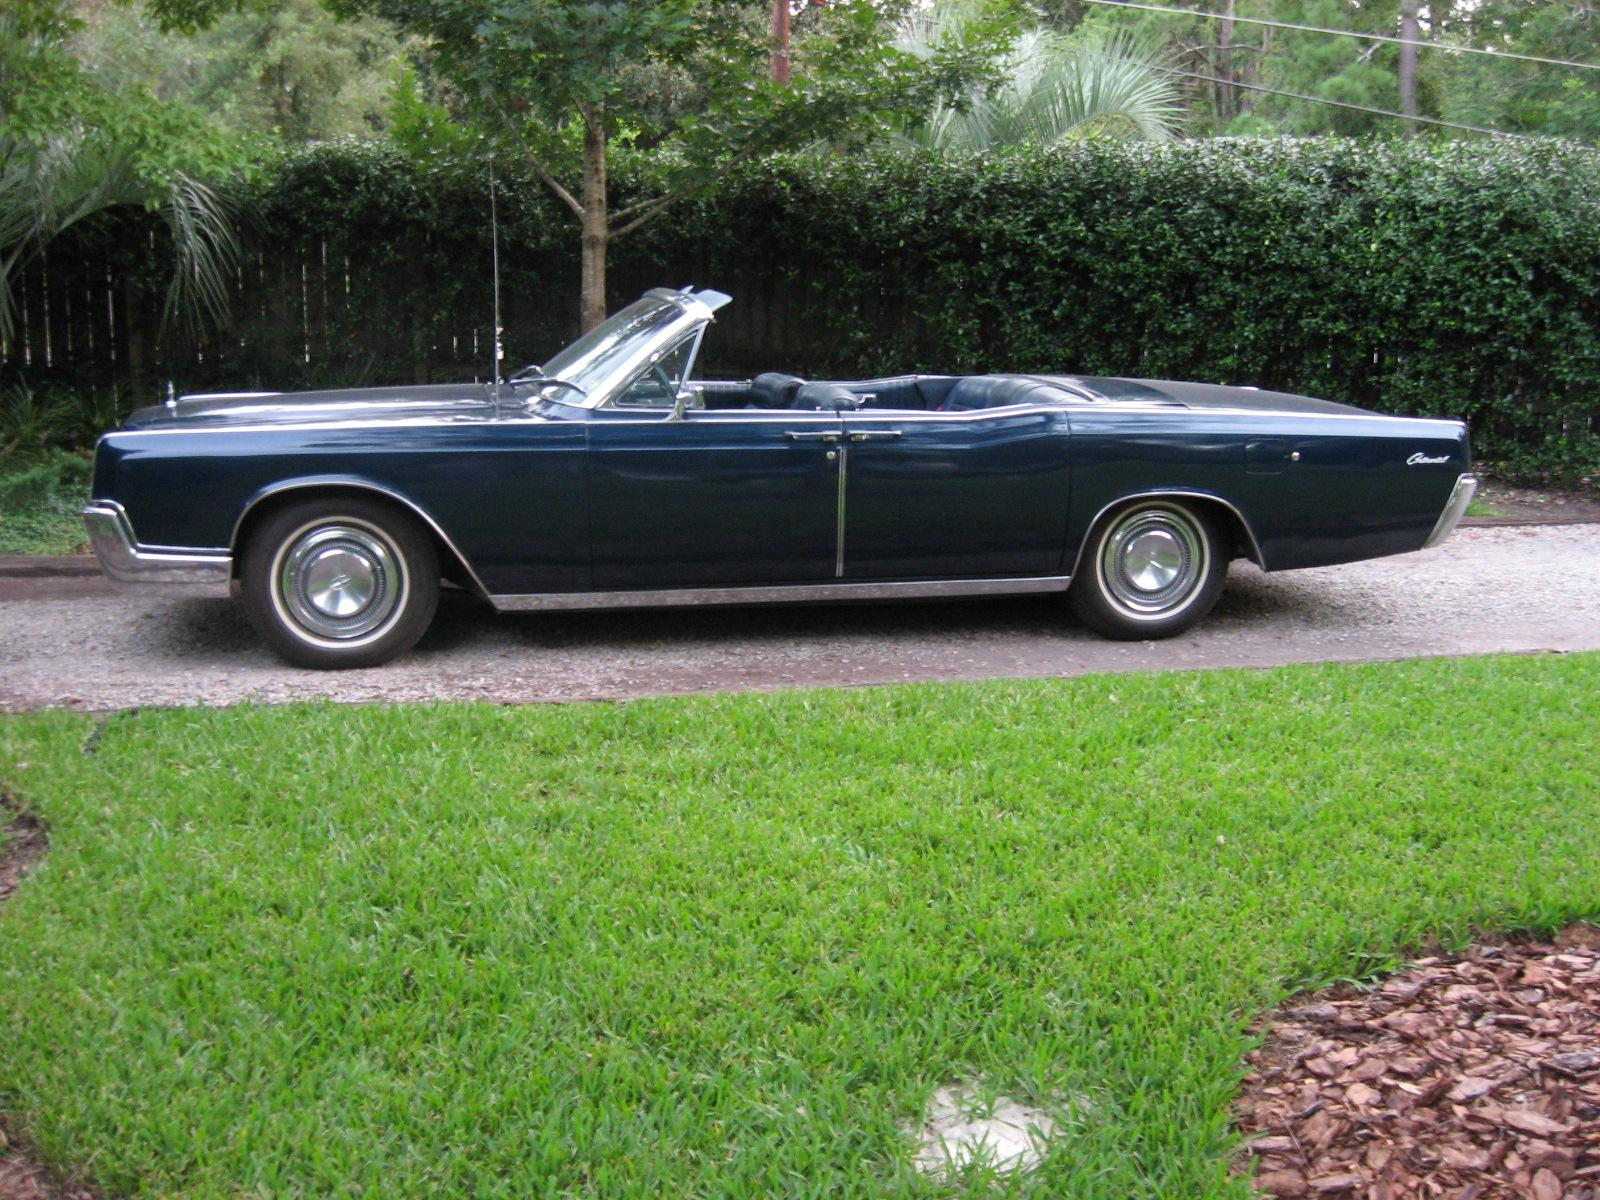 Powerstrokin250 1967 Lincoln Continental